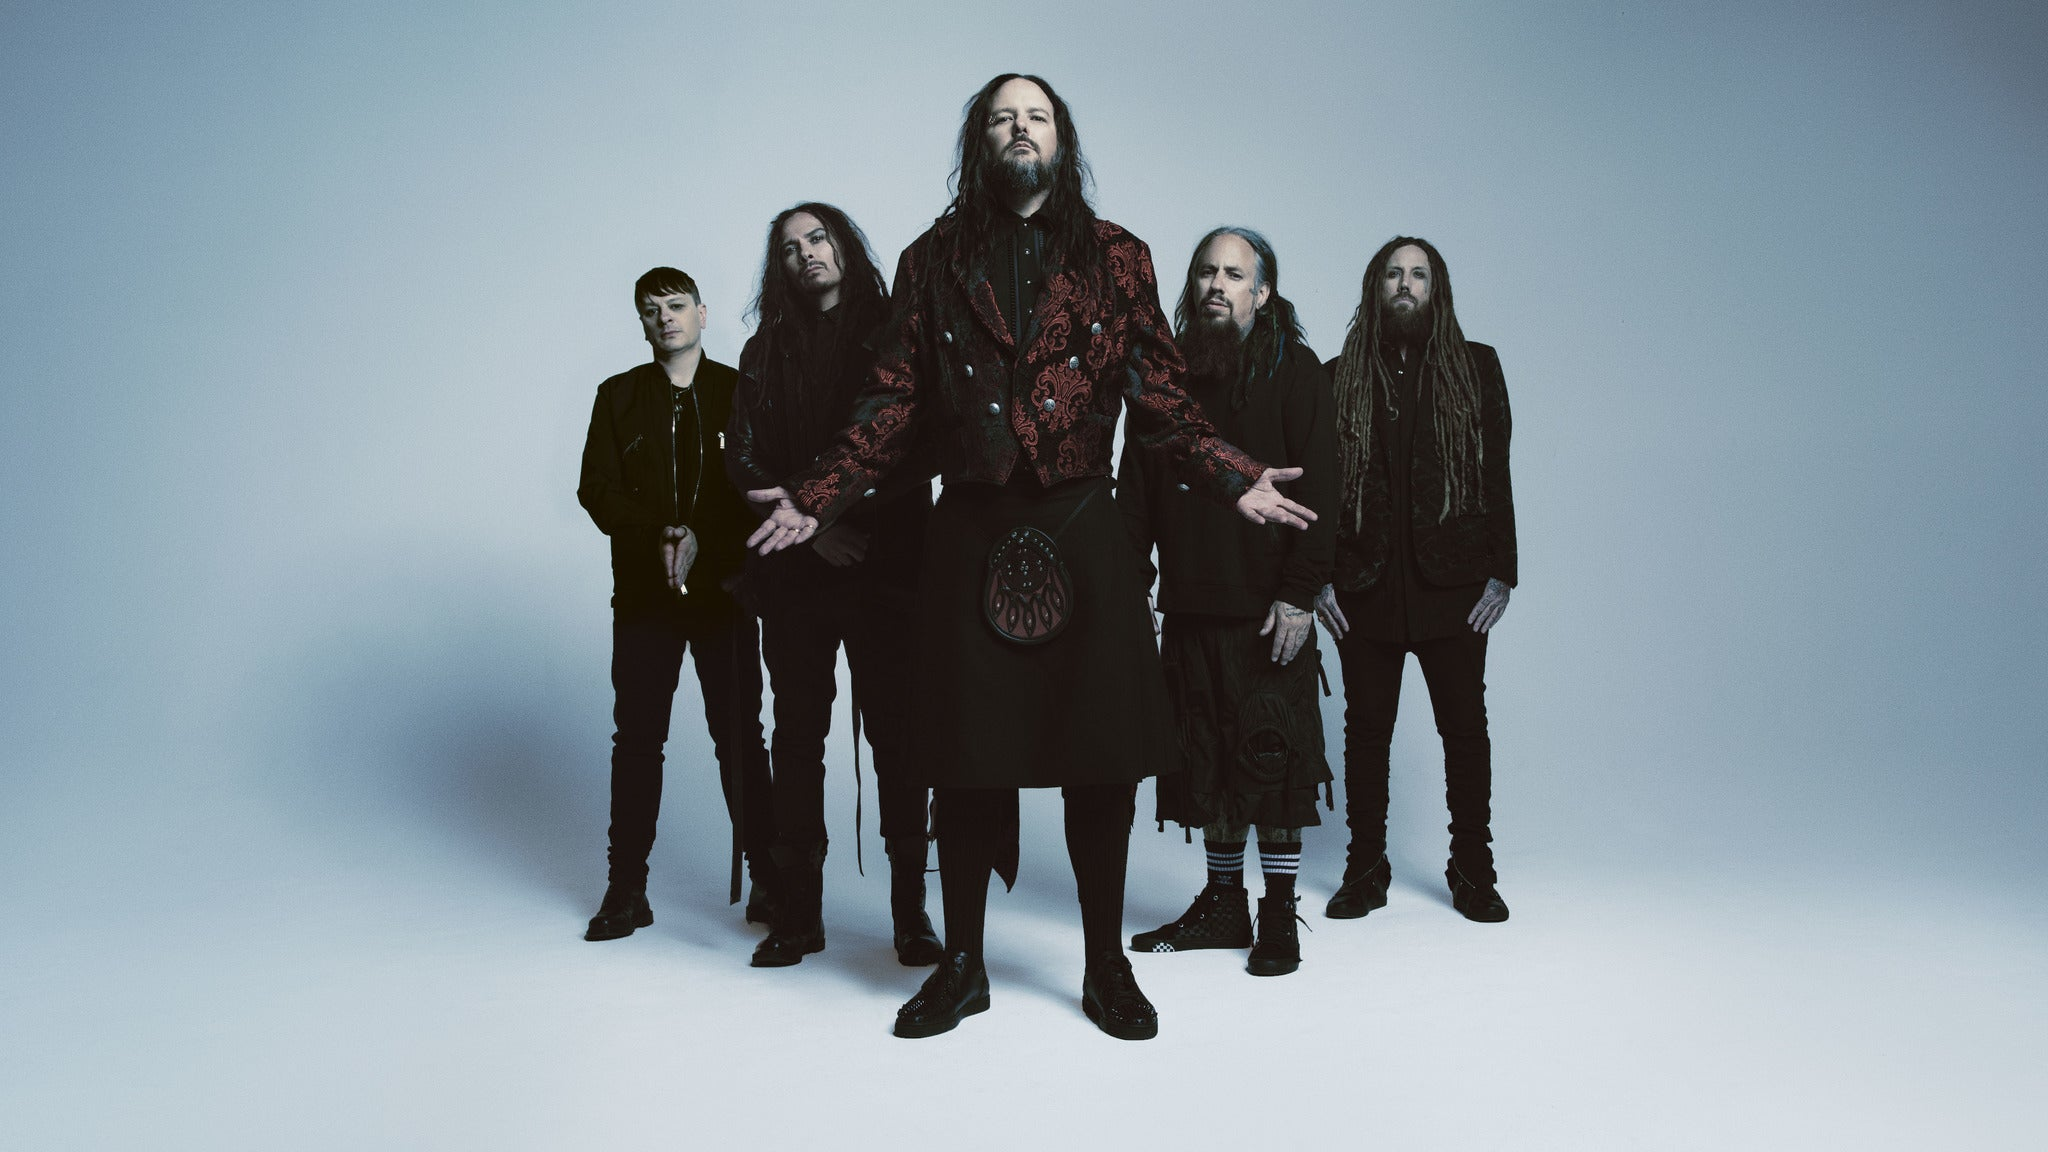 Korn & Staind pre-sale code for event tickets in Austin, TX (Germania Insurance Amphitheater)